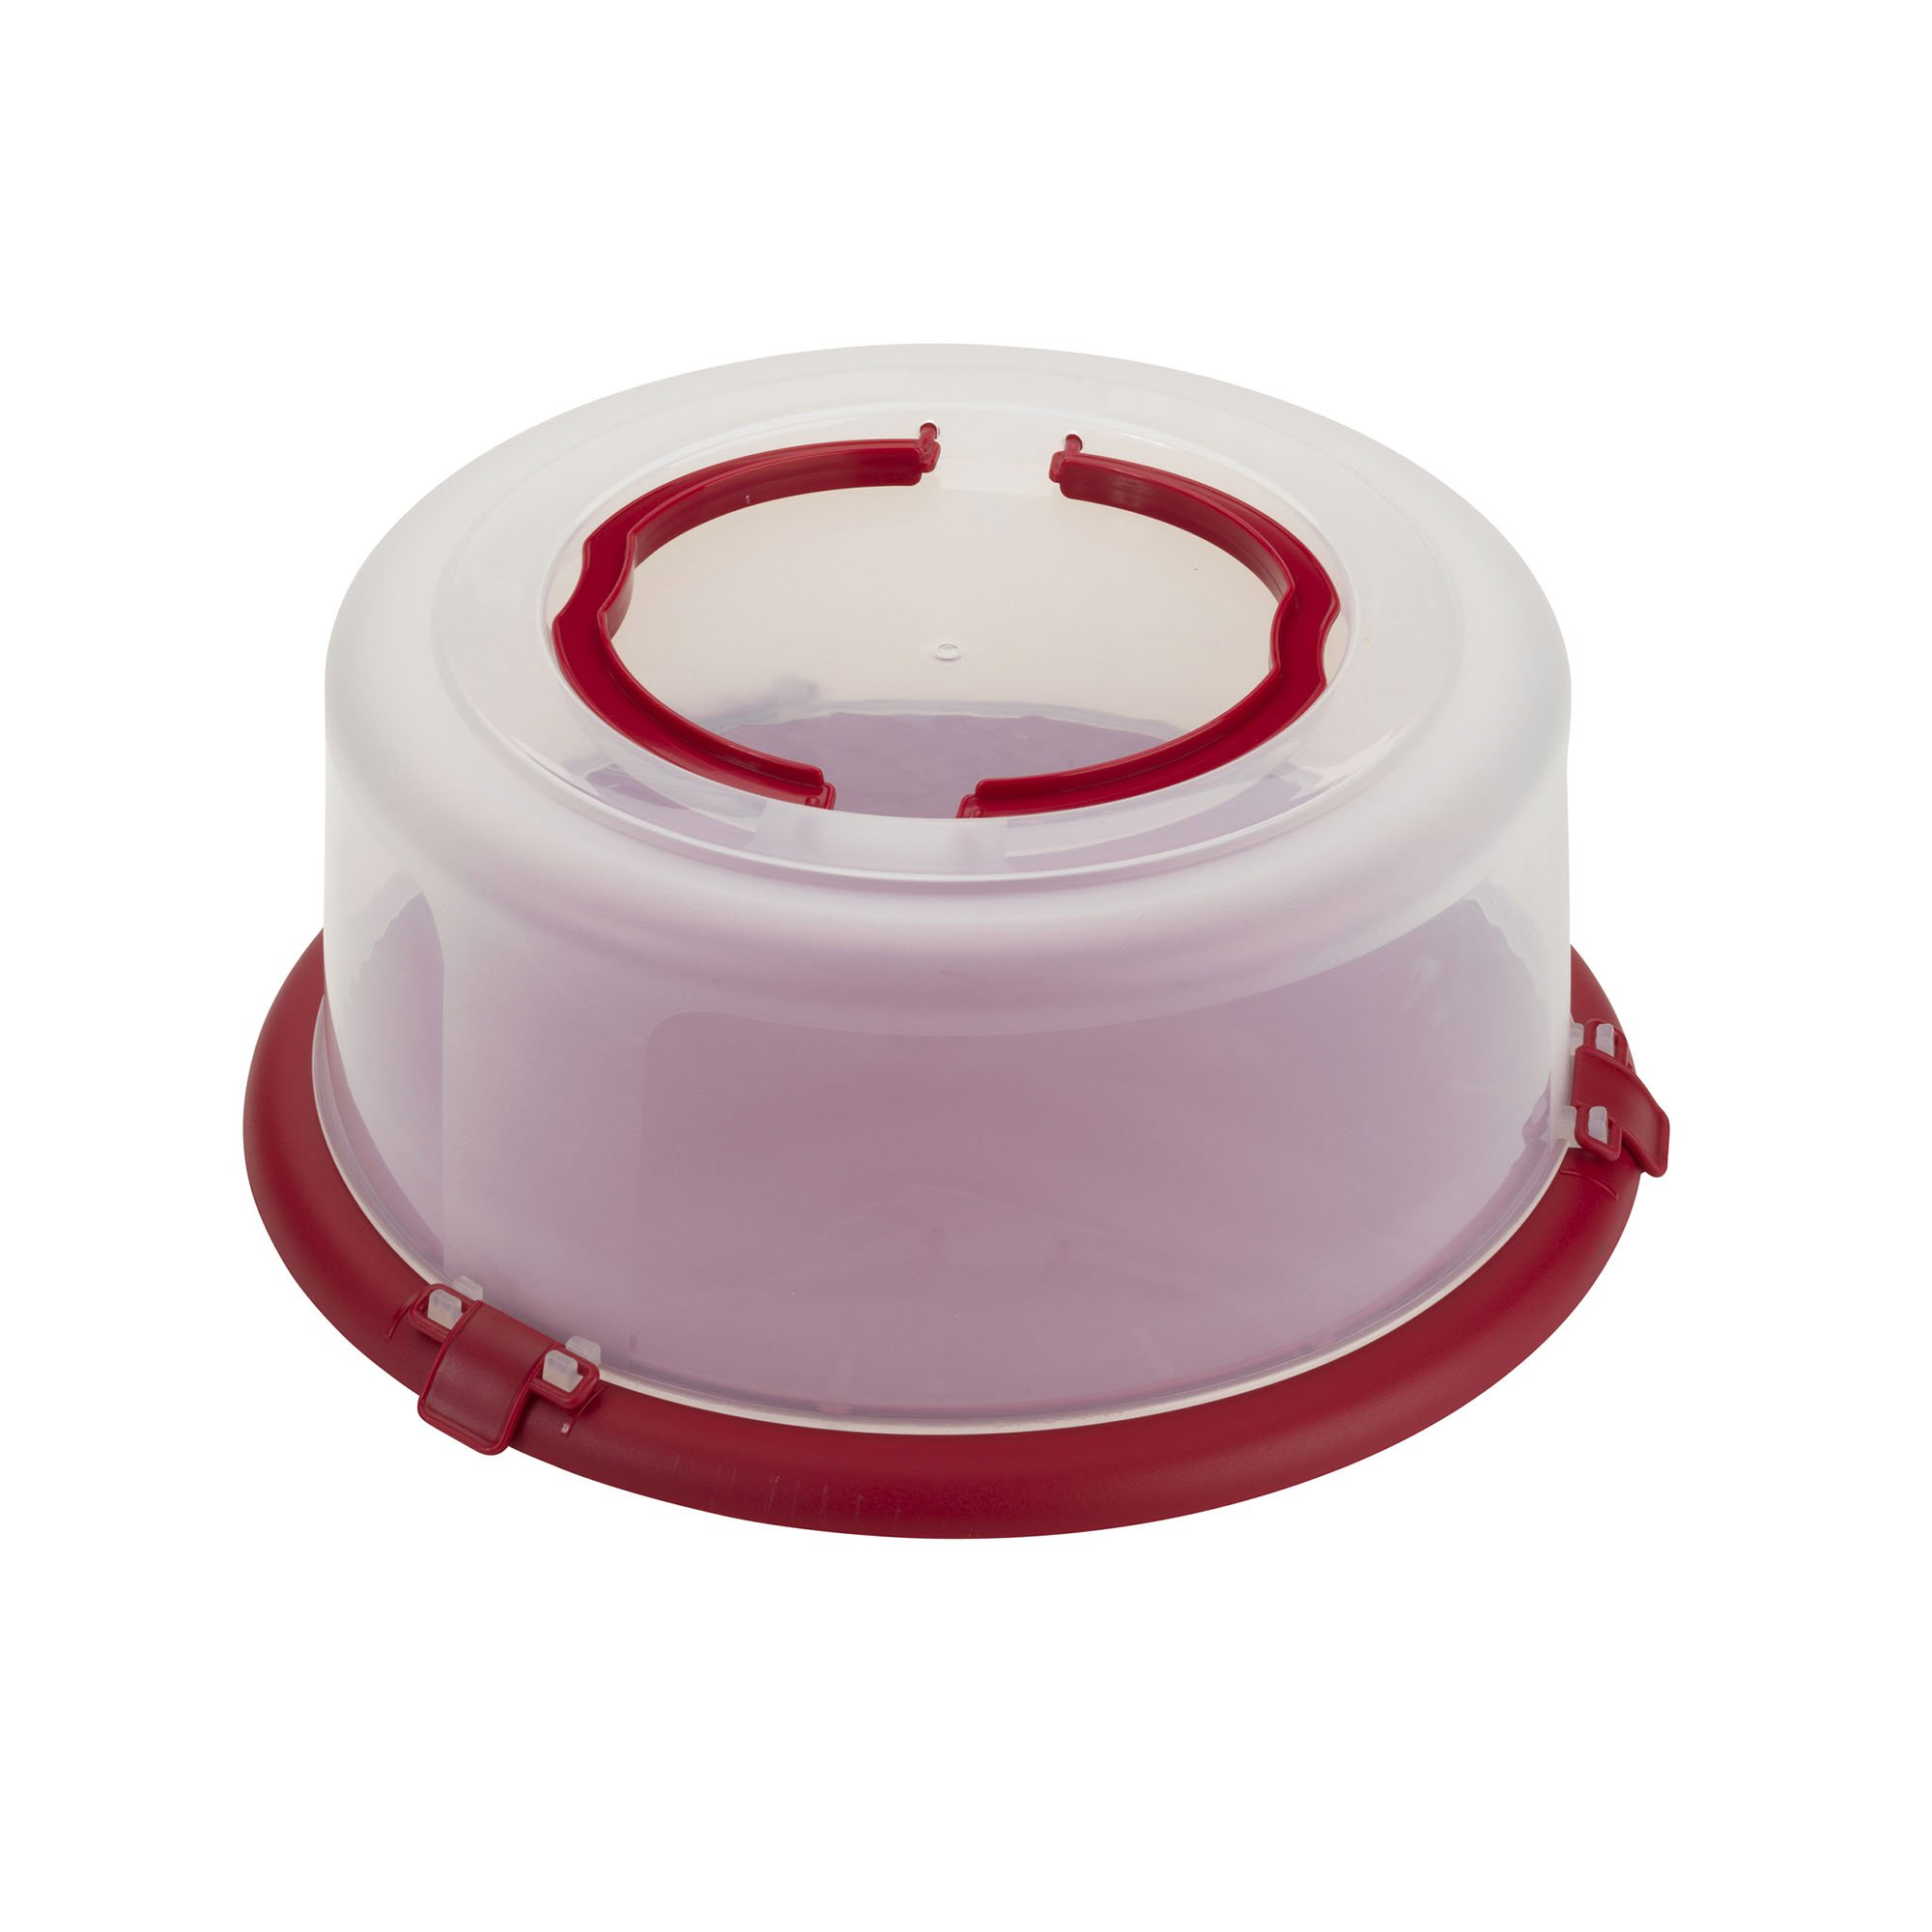 Good Cook Bake-n-Take Round Cake Carrier with Handle, 12'', Red